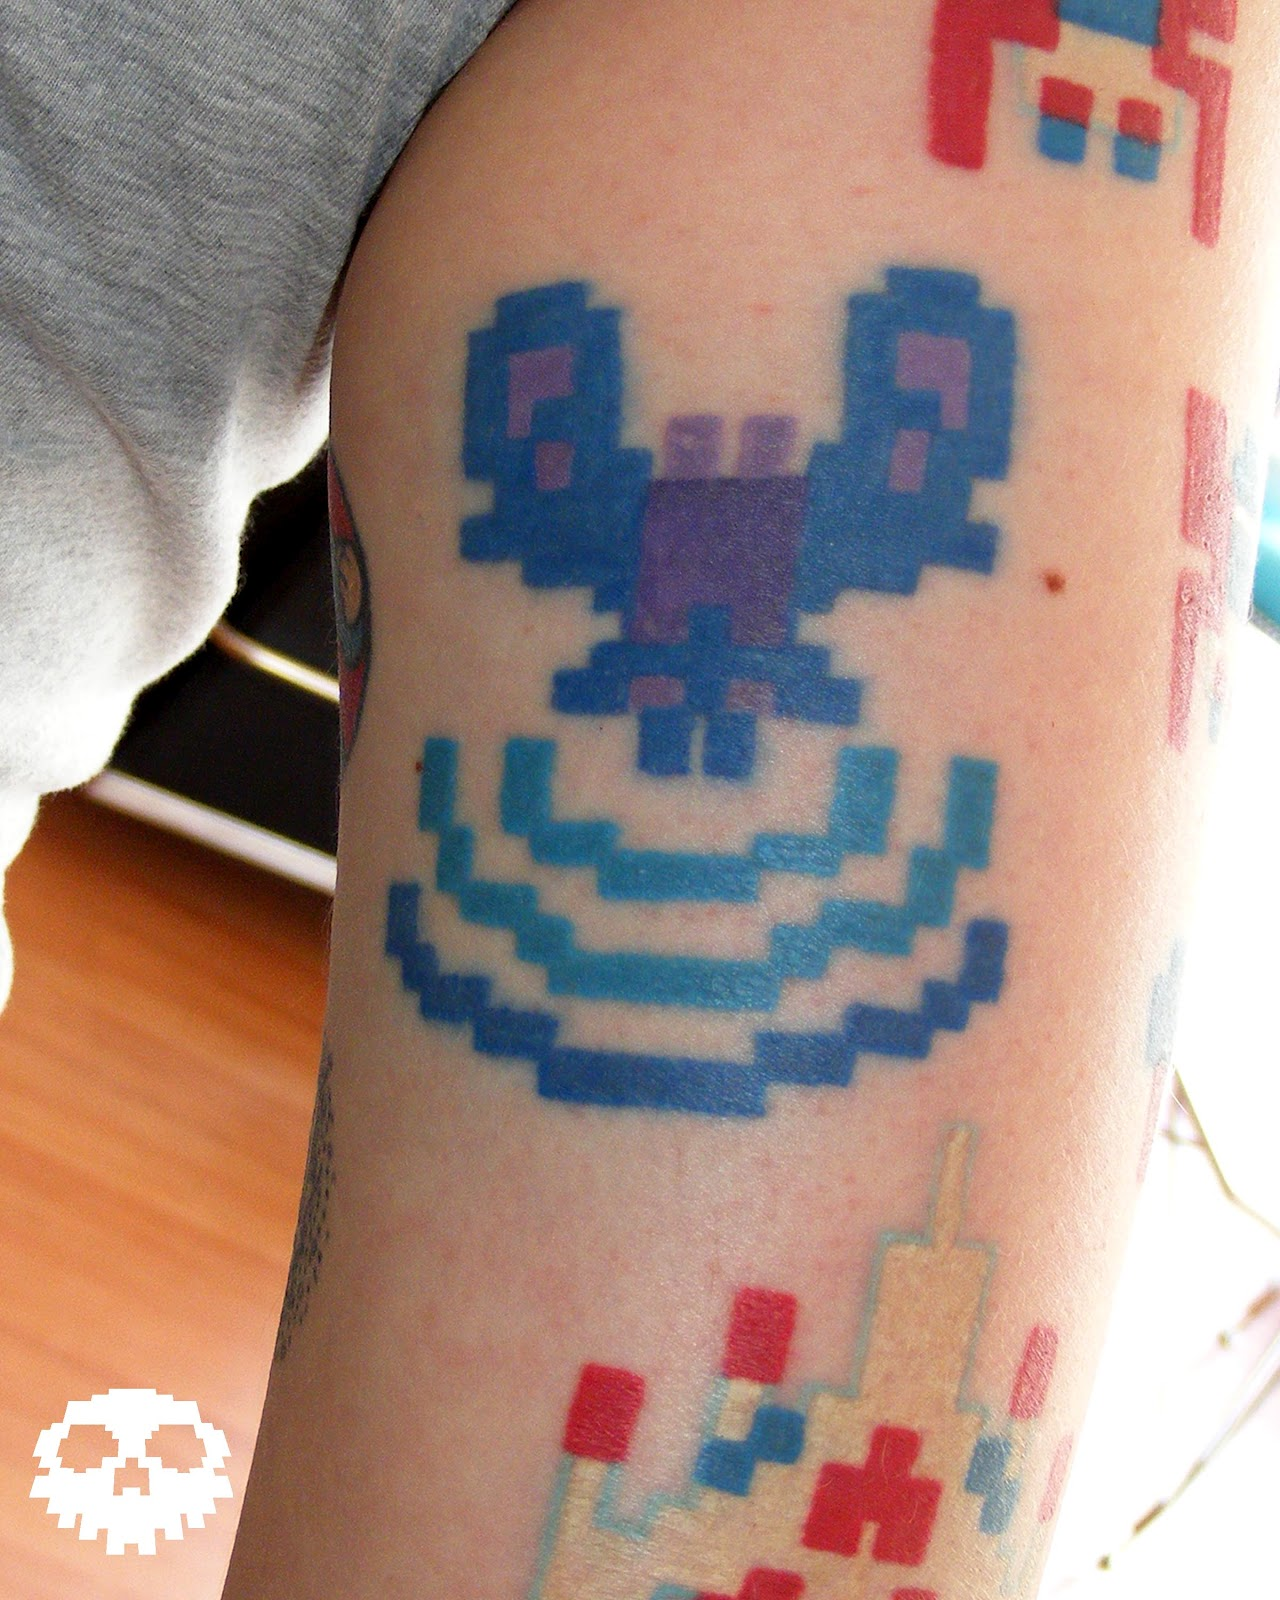 Xbox Tattoo Ideas: Welcome To The Artisanal Tattoo Blog!: Video Game Tattoos